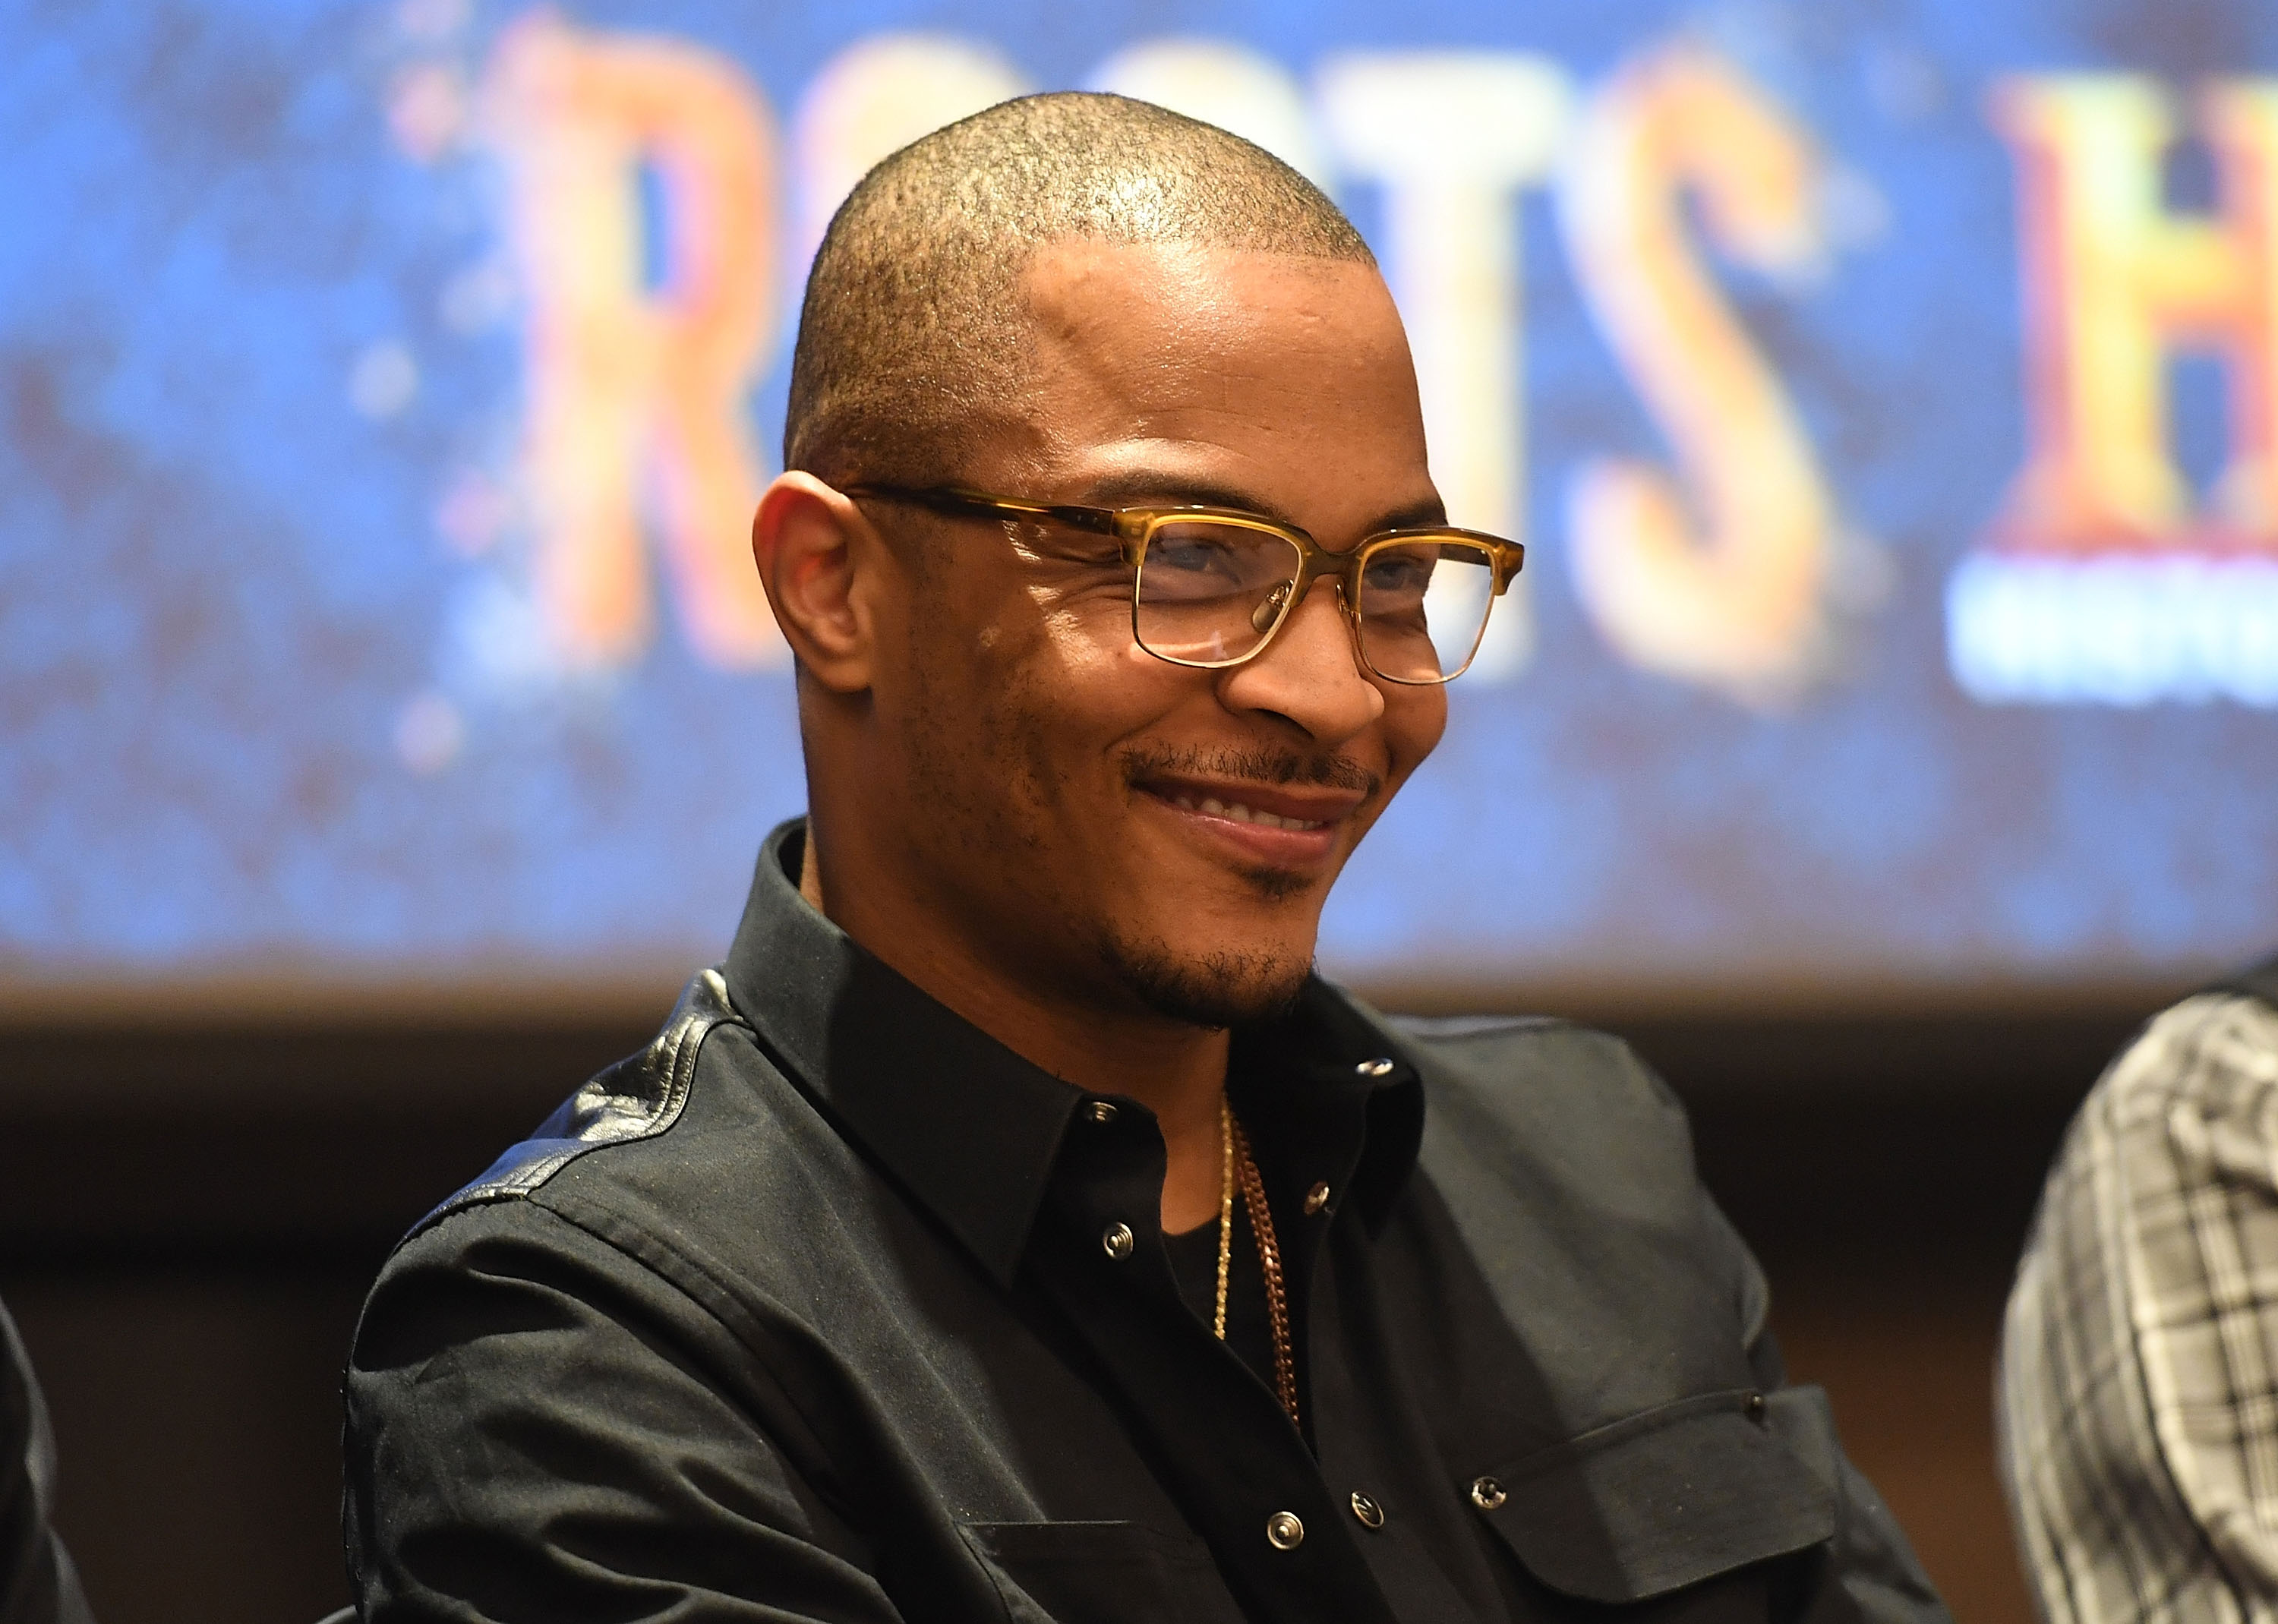 """ATLANTA, GA - MAY 09:  Actor/rapper Tip ""T.I."" Harris onstage at HISTORY's ""Roots"" Atlanta advanced screening at National Center for Civil and Human Rights on May 9, 2016 in Atlanta, Georgia.  (Photo by Paras Griffin/Getty Images for History/Roots)"""